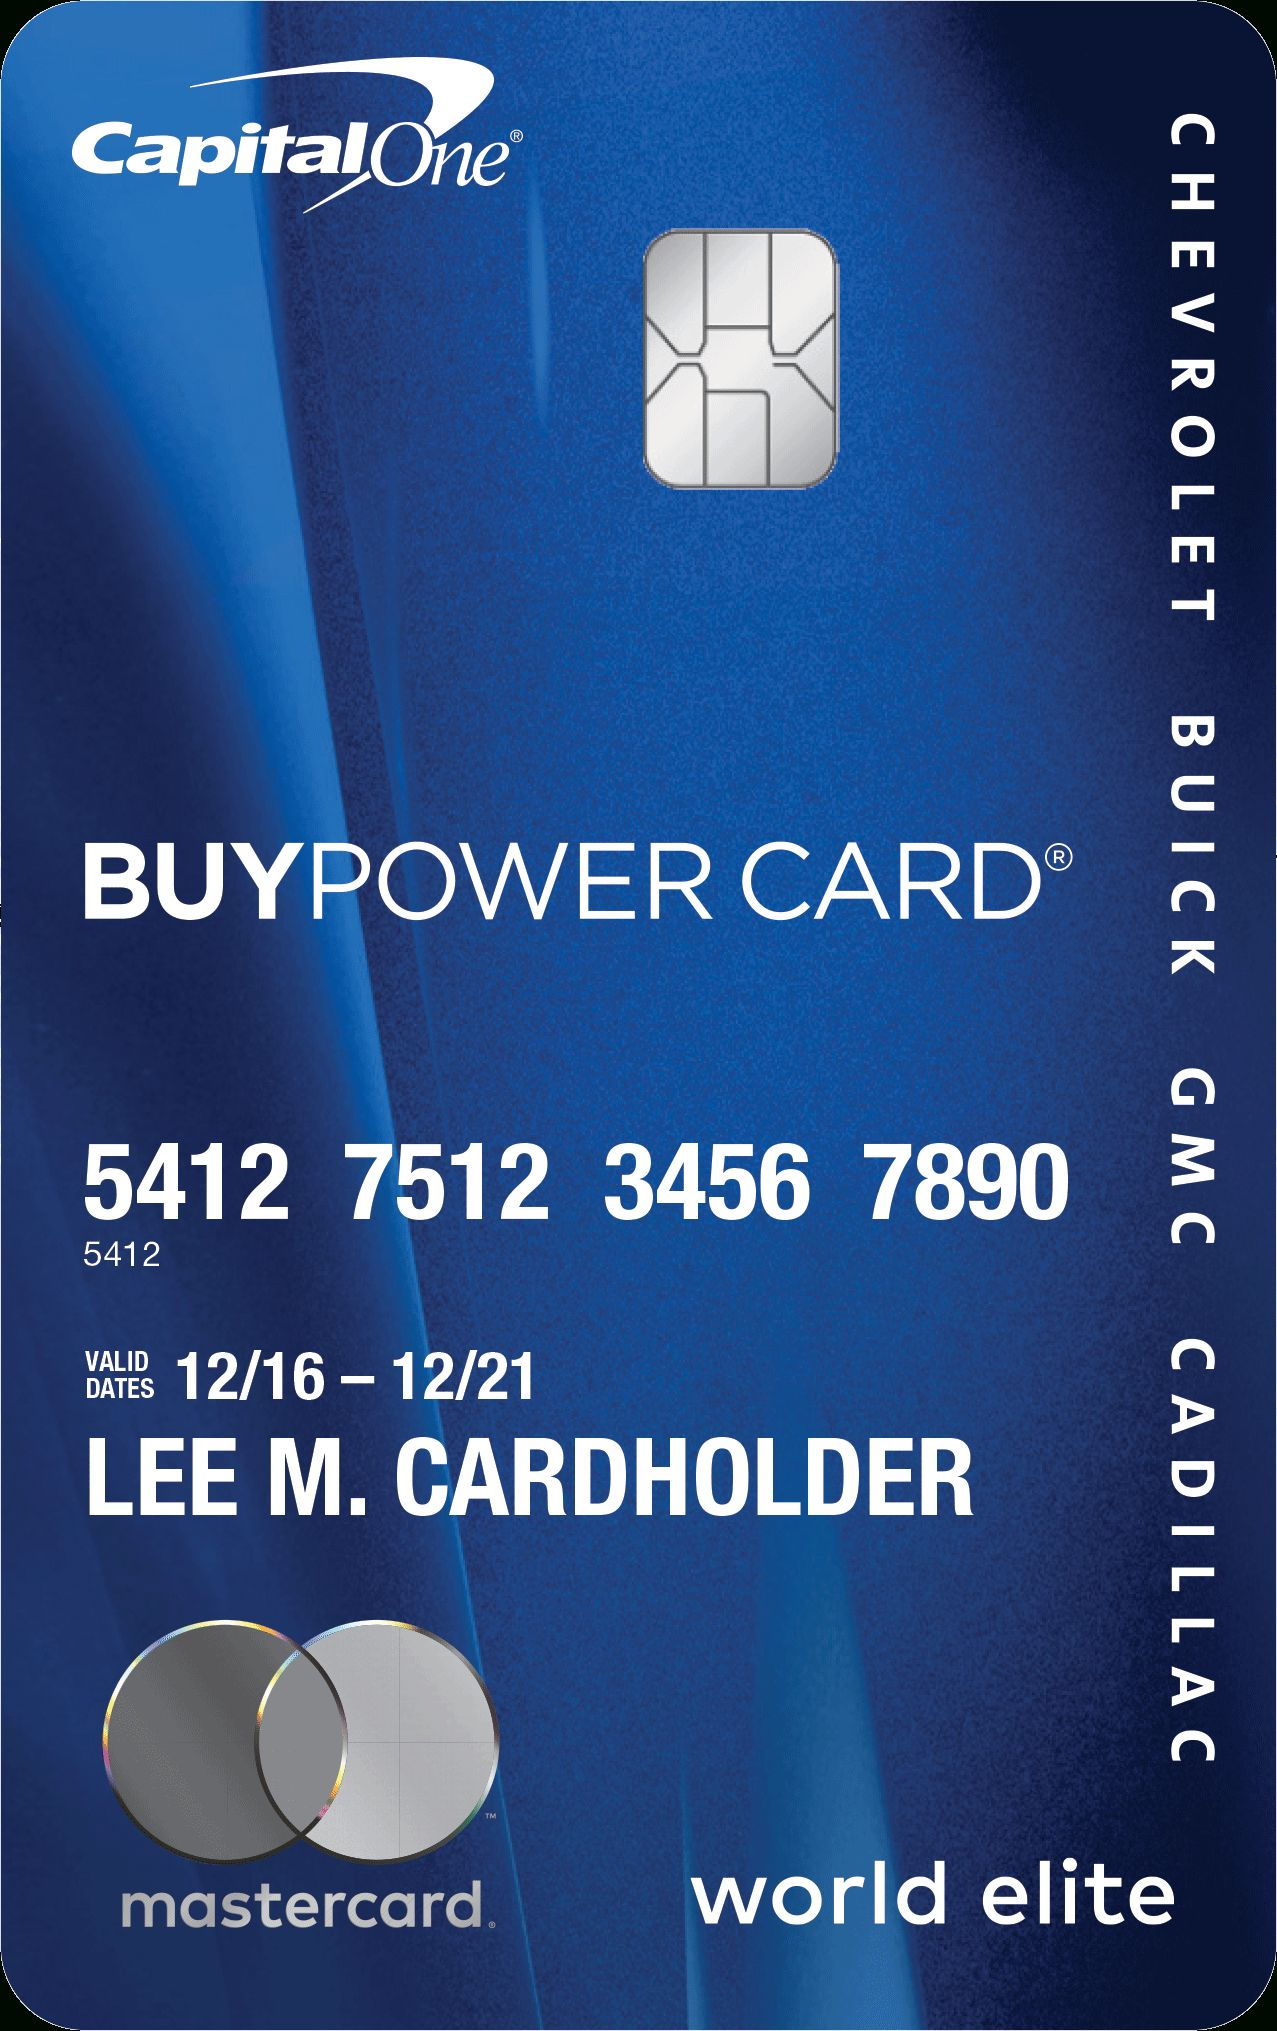 Business Cards Best Deals In 2021 Credit Card Online Credit Card Apply Capital One Credit Card